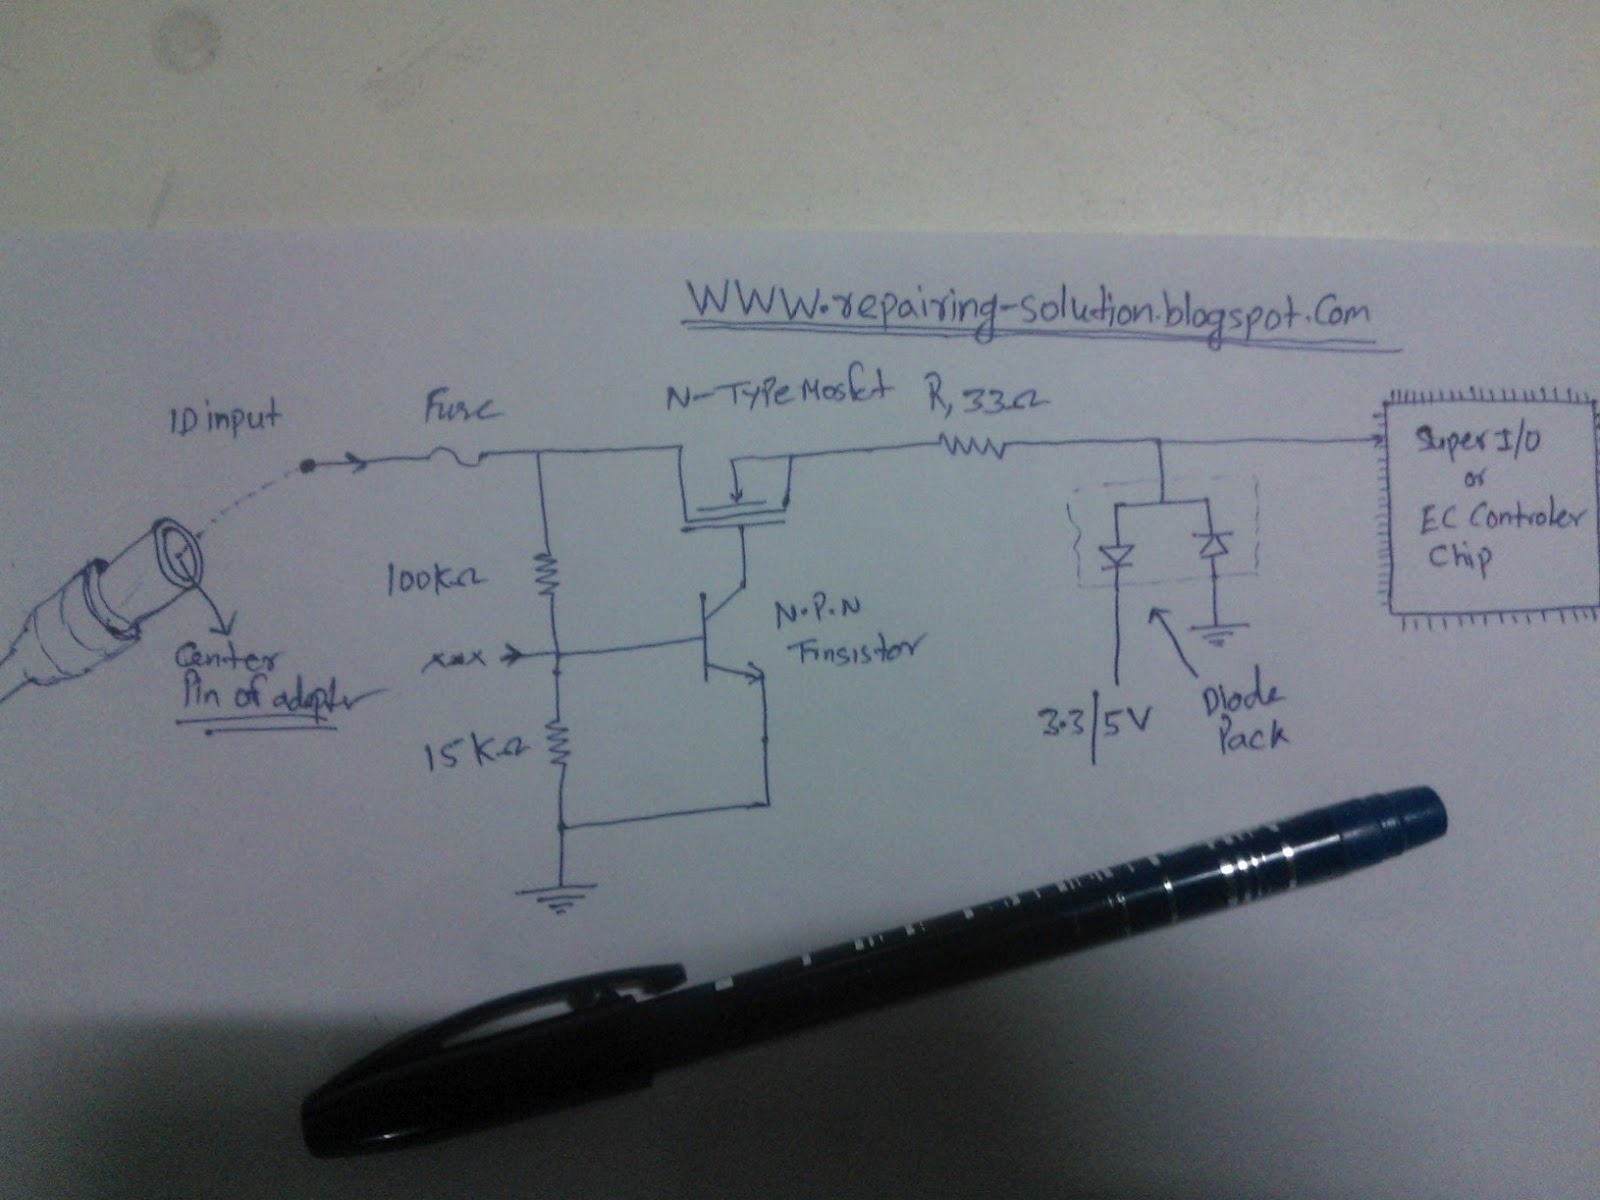 Dell Laptop Charger Wiring Diagram 34 Images Battery Circuit All Repairing Solution How To Fix If Not Charging Section